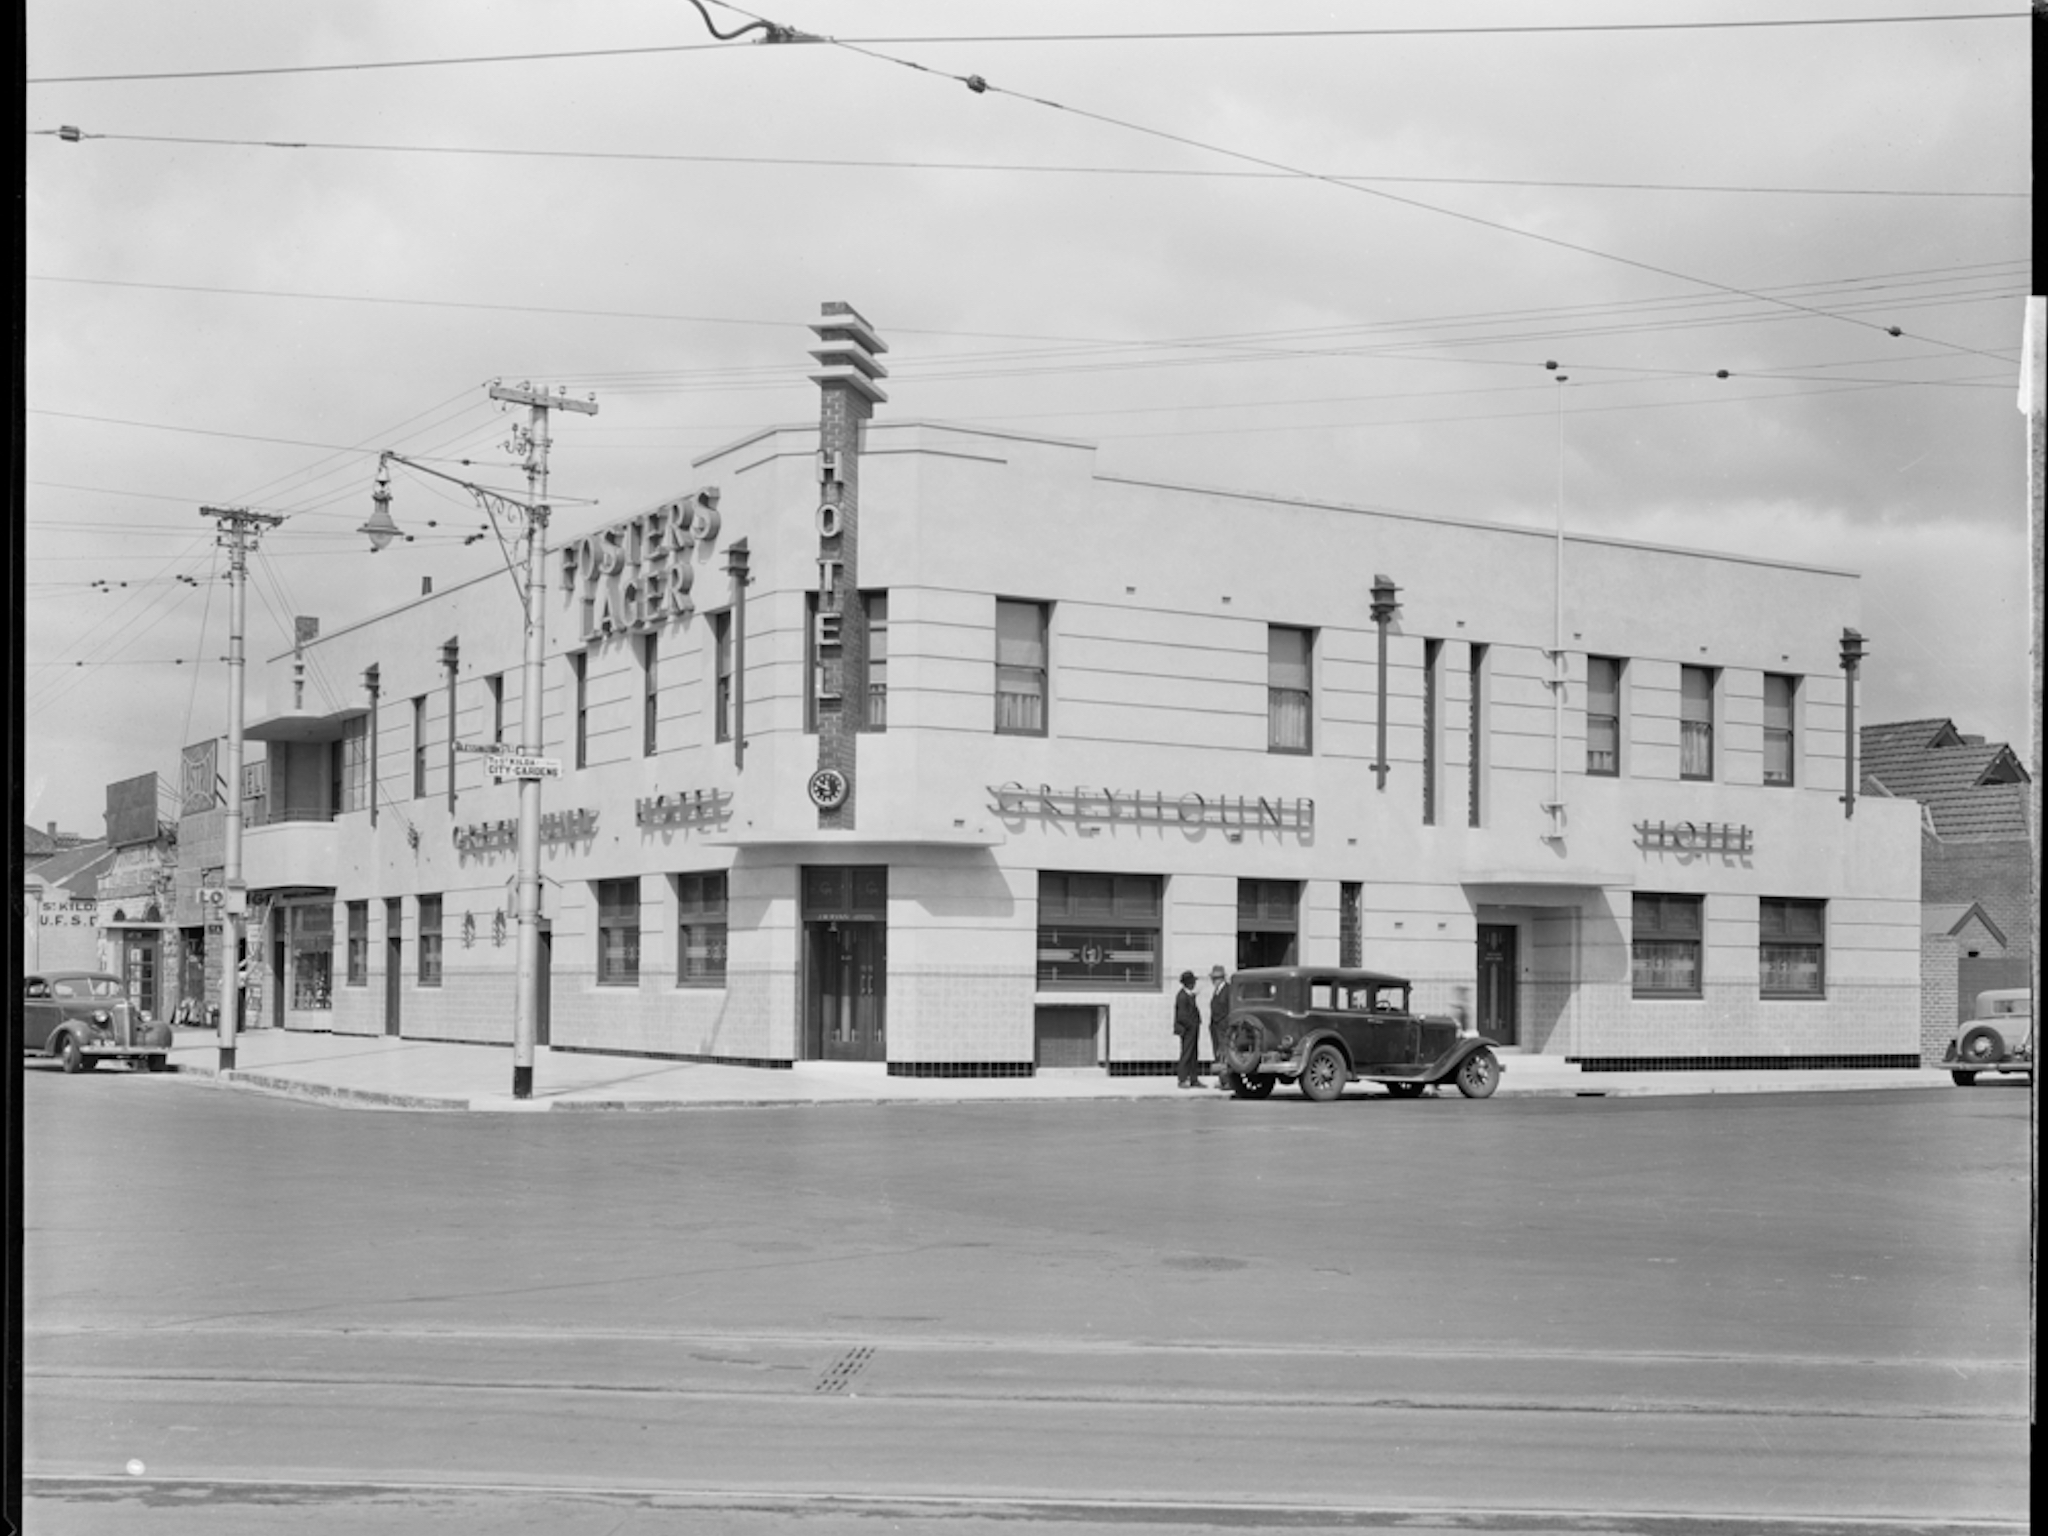 The Greyhound Hotel in 1936